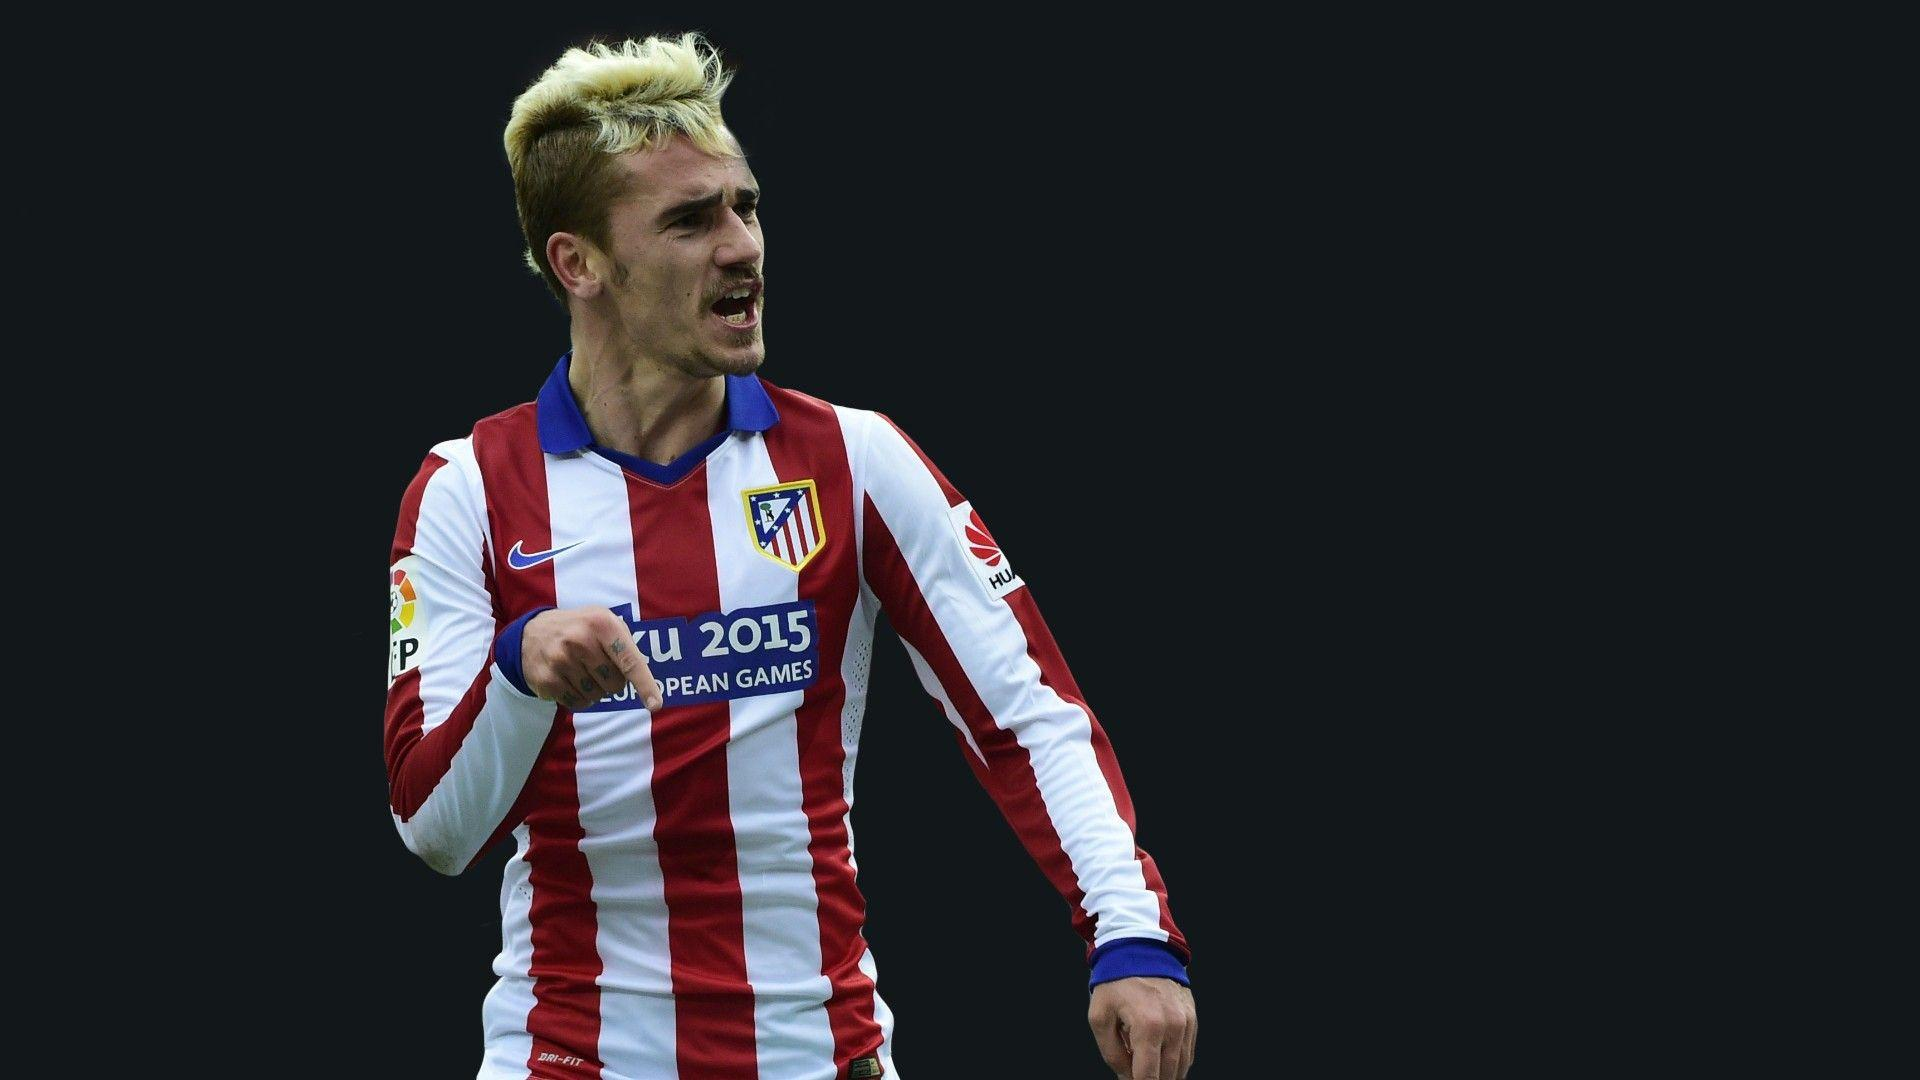 Find the perfect antoine griezmann stock photo. Antoine Griezmann Wallpapers - Wallpaper Cave